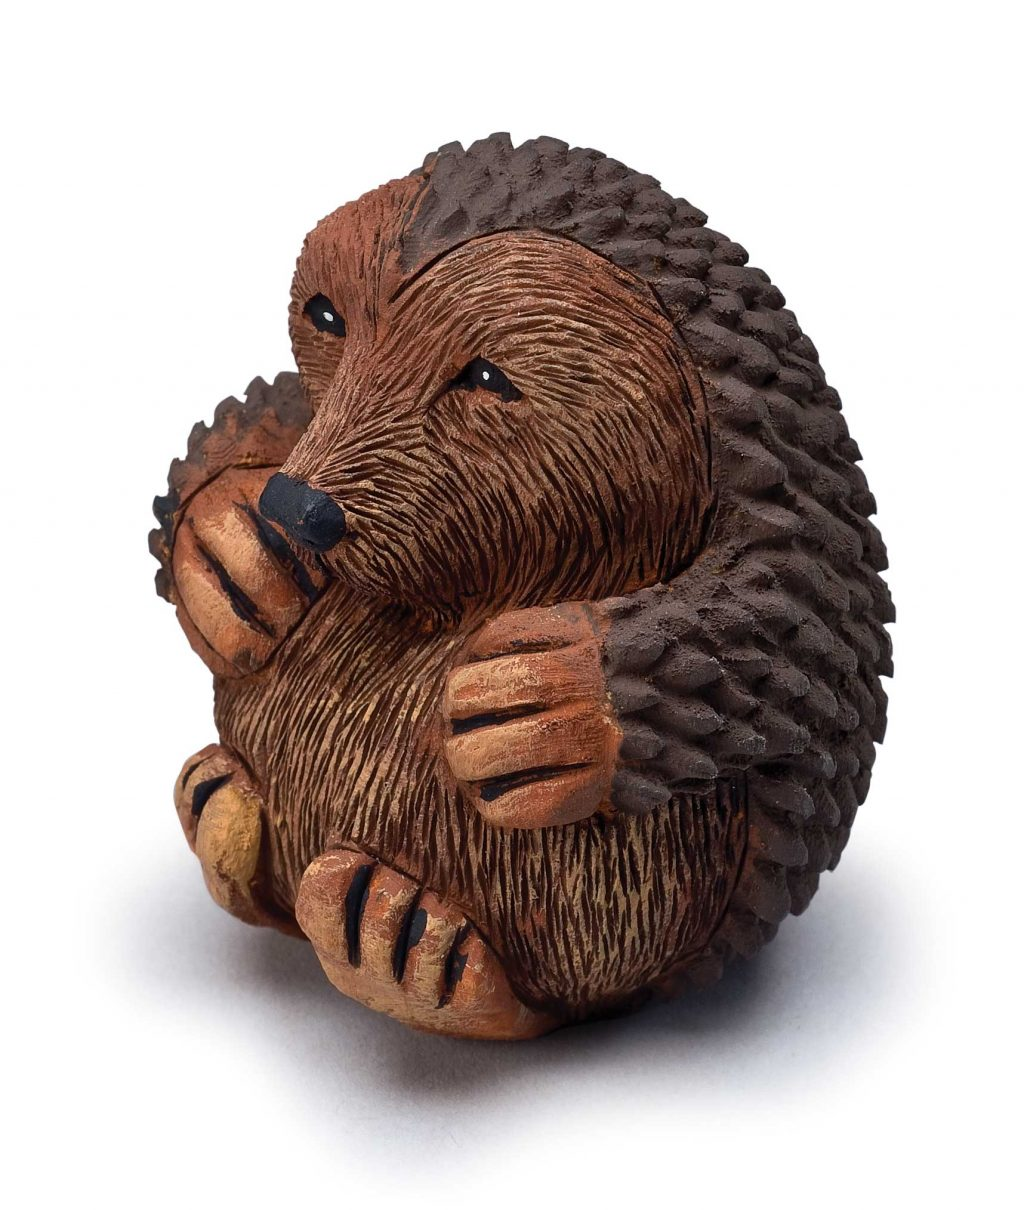 Roly poly bear woodcarving illustrated